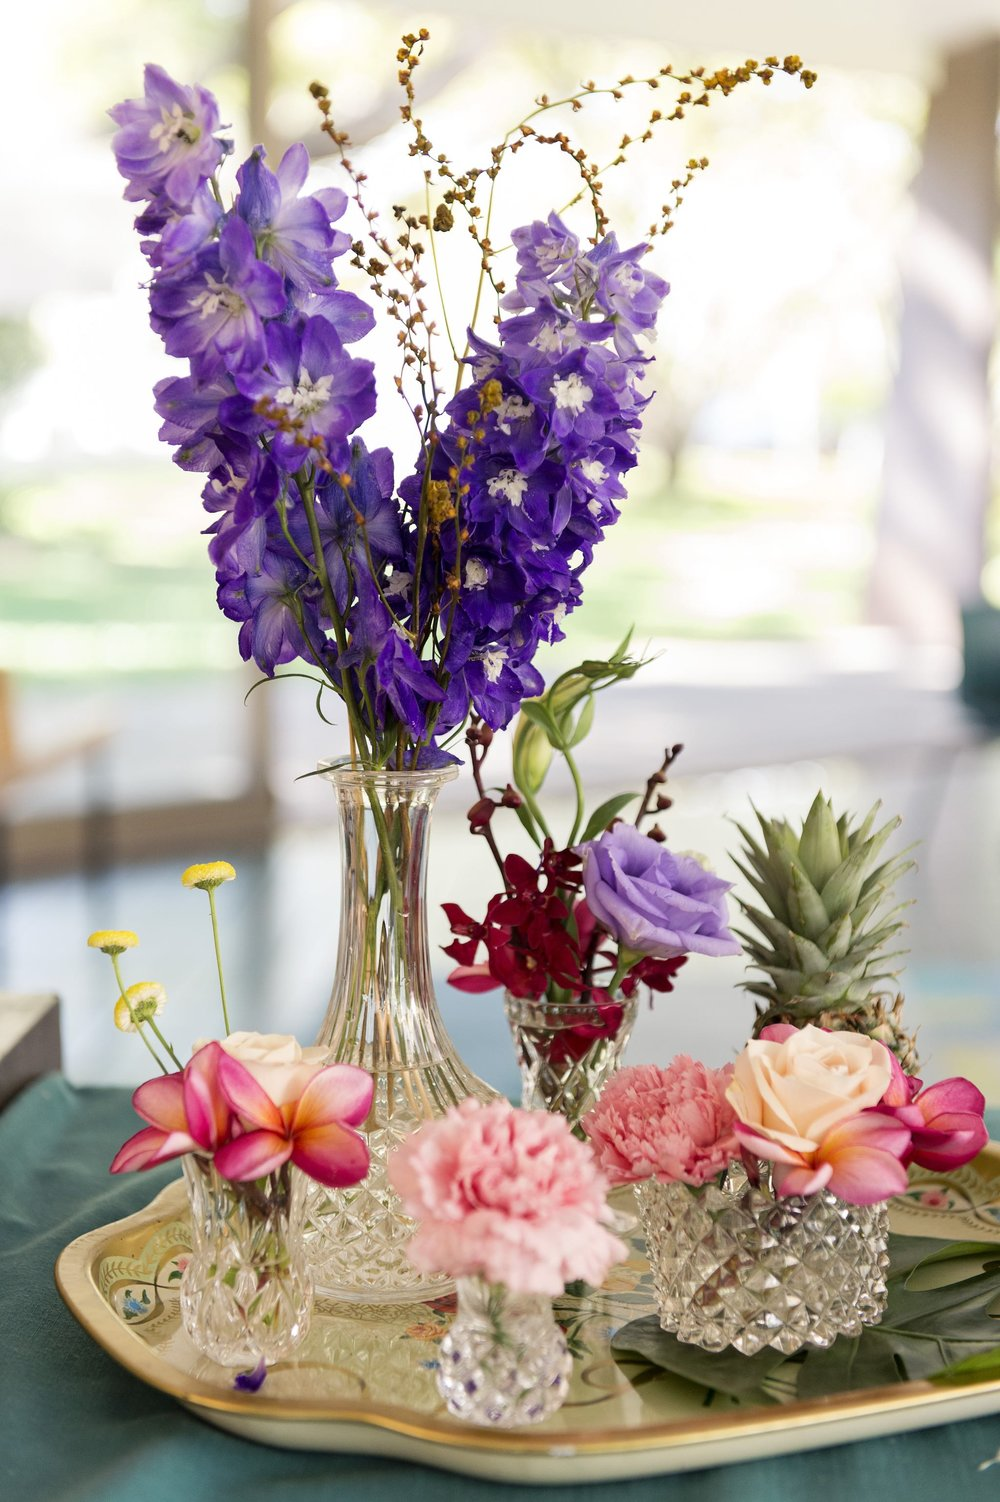 crystal vases topped with delphiniums, roses and pineapples